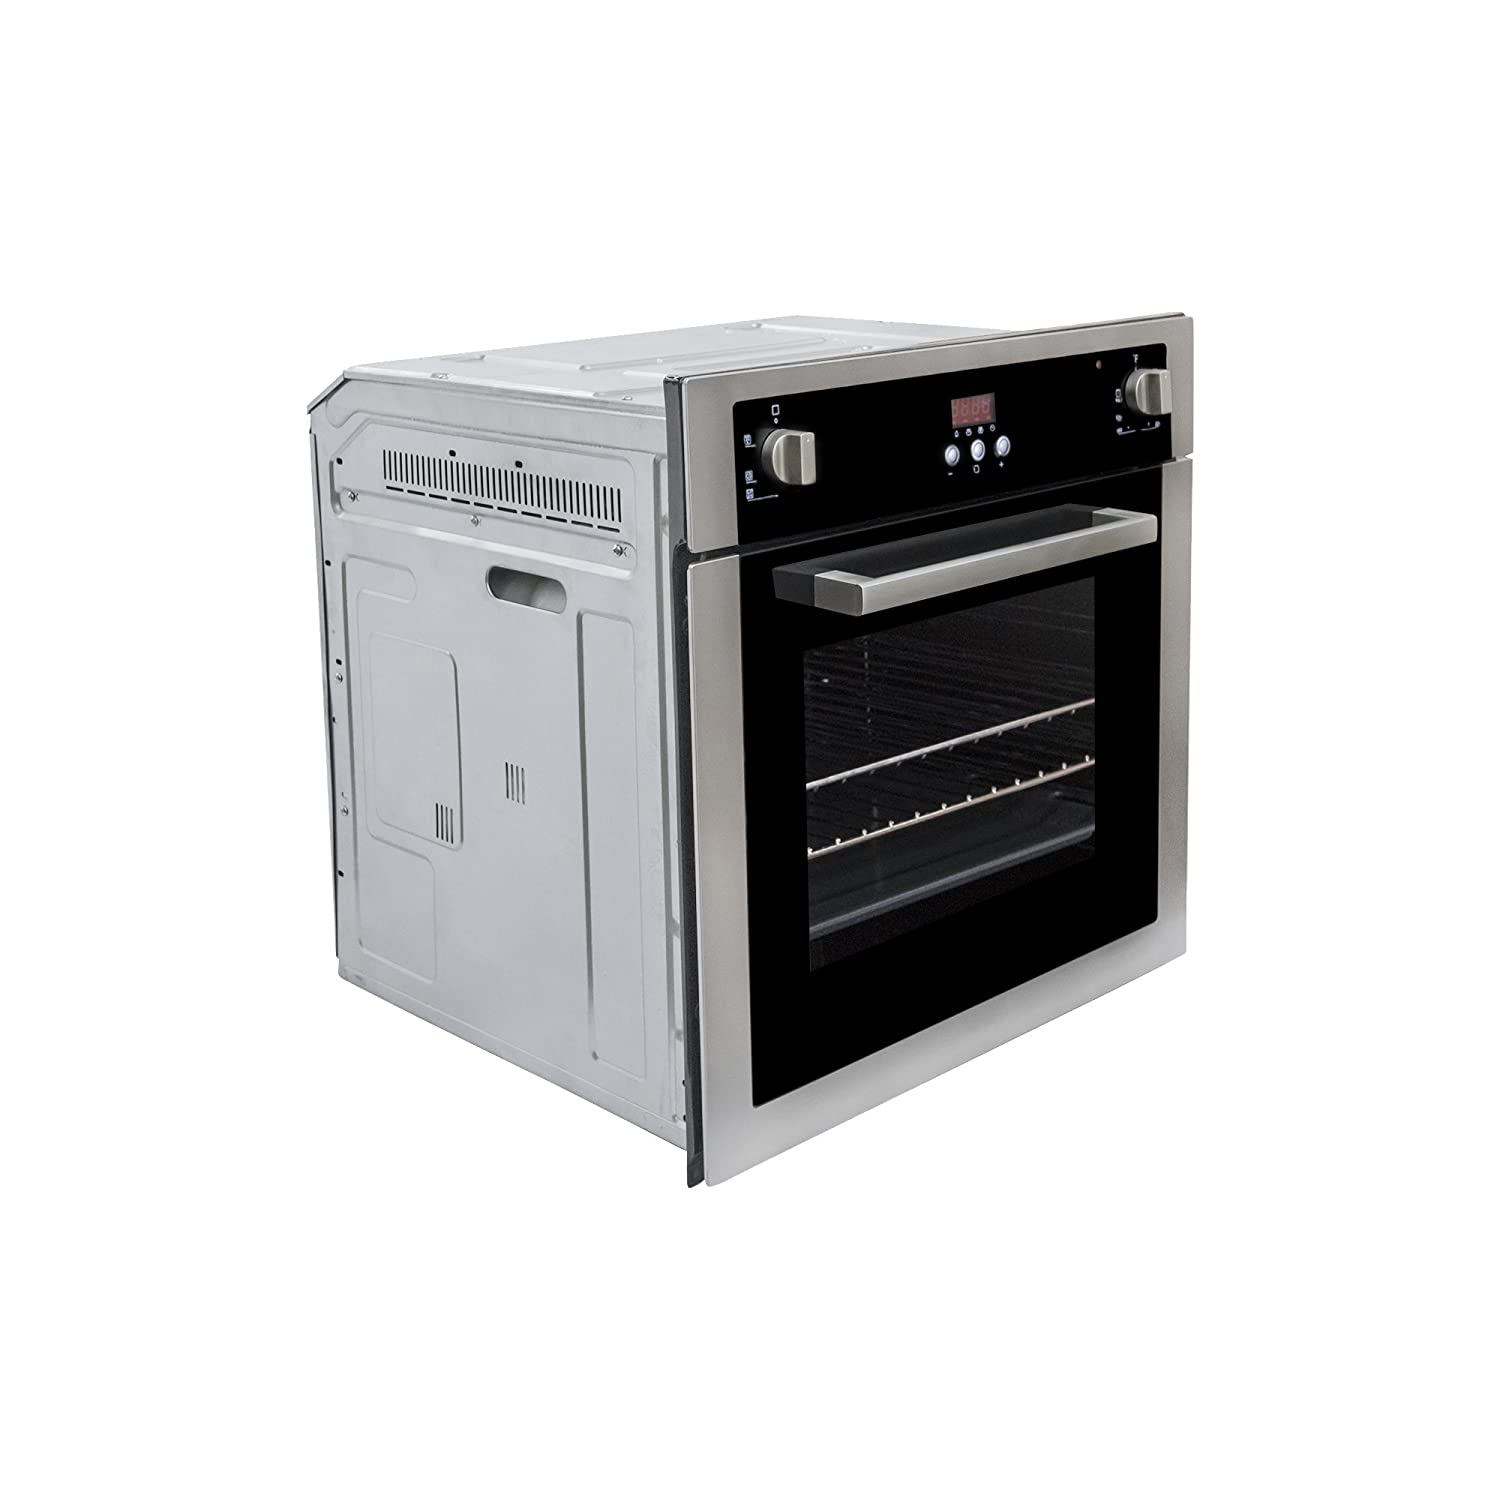 Cosmo C51eix 24 In Single Electric Wall Oven With Replacing 12 2 3 Behind Electrical Diy Chatroom Home Convection Appliances